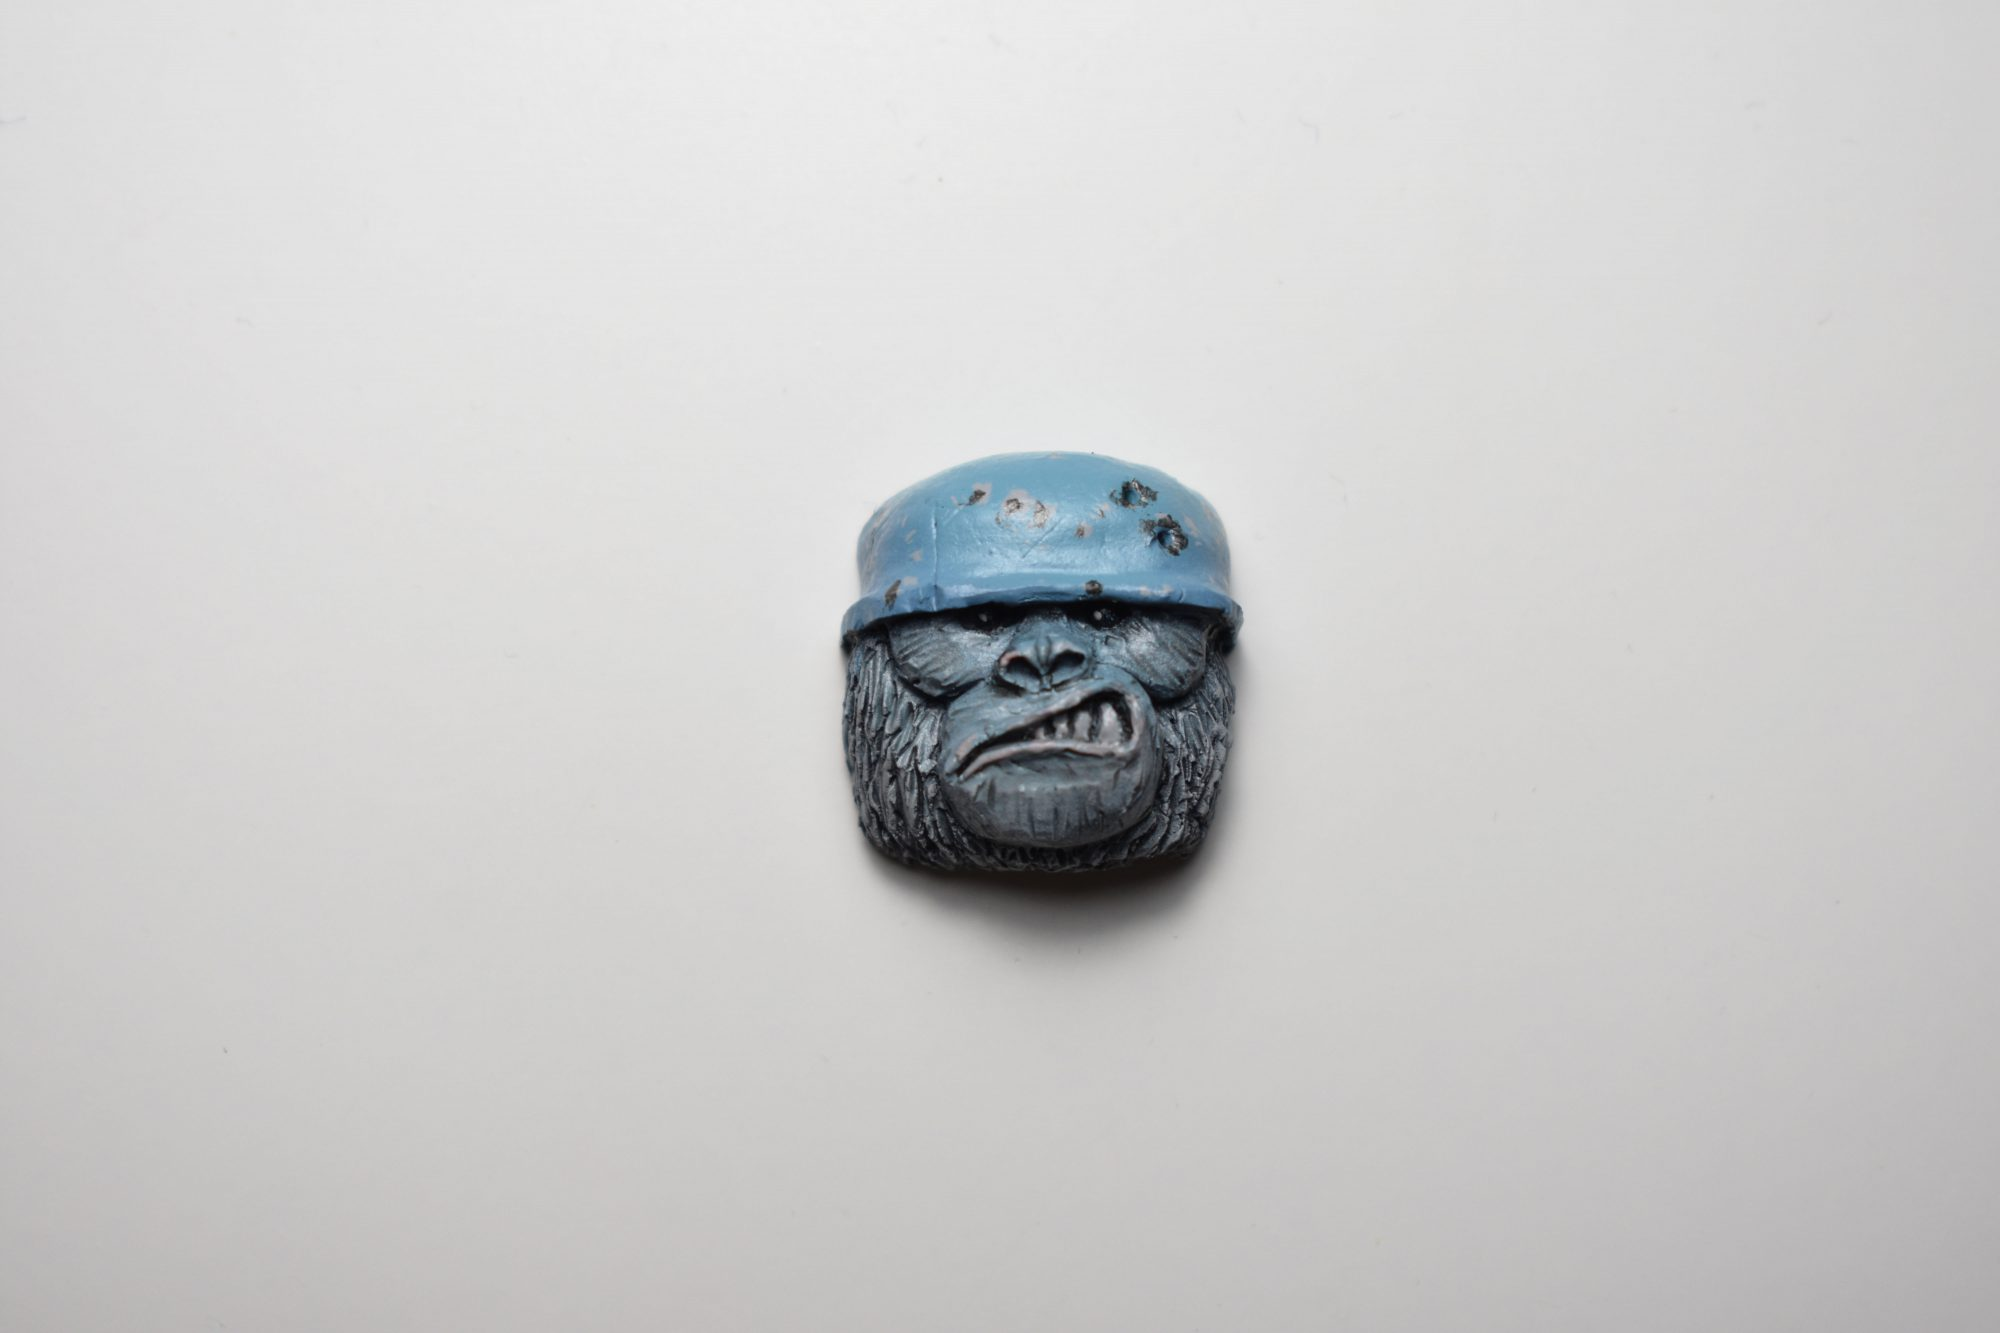 Tropic Thunder Arctic Painted Artisan Keycap (Limited)